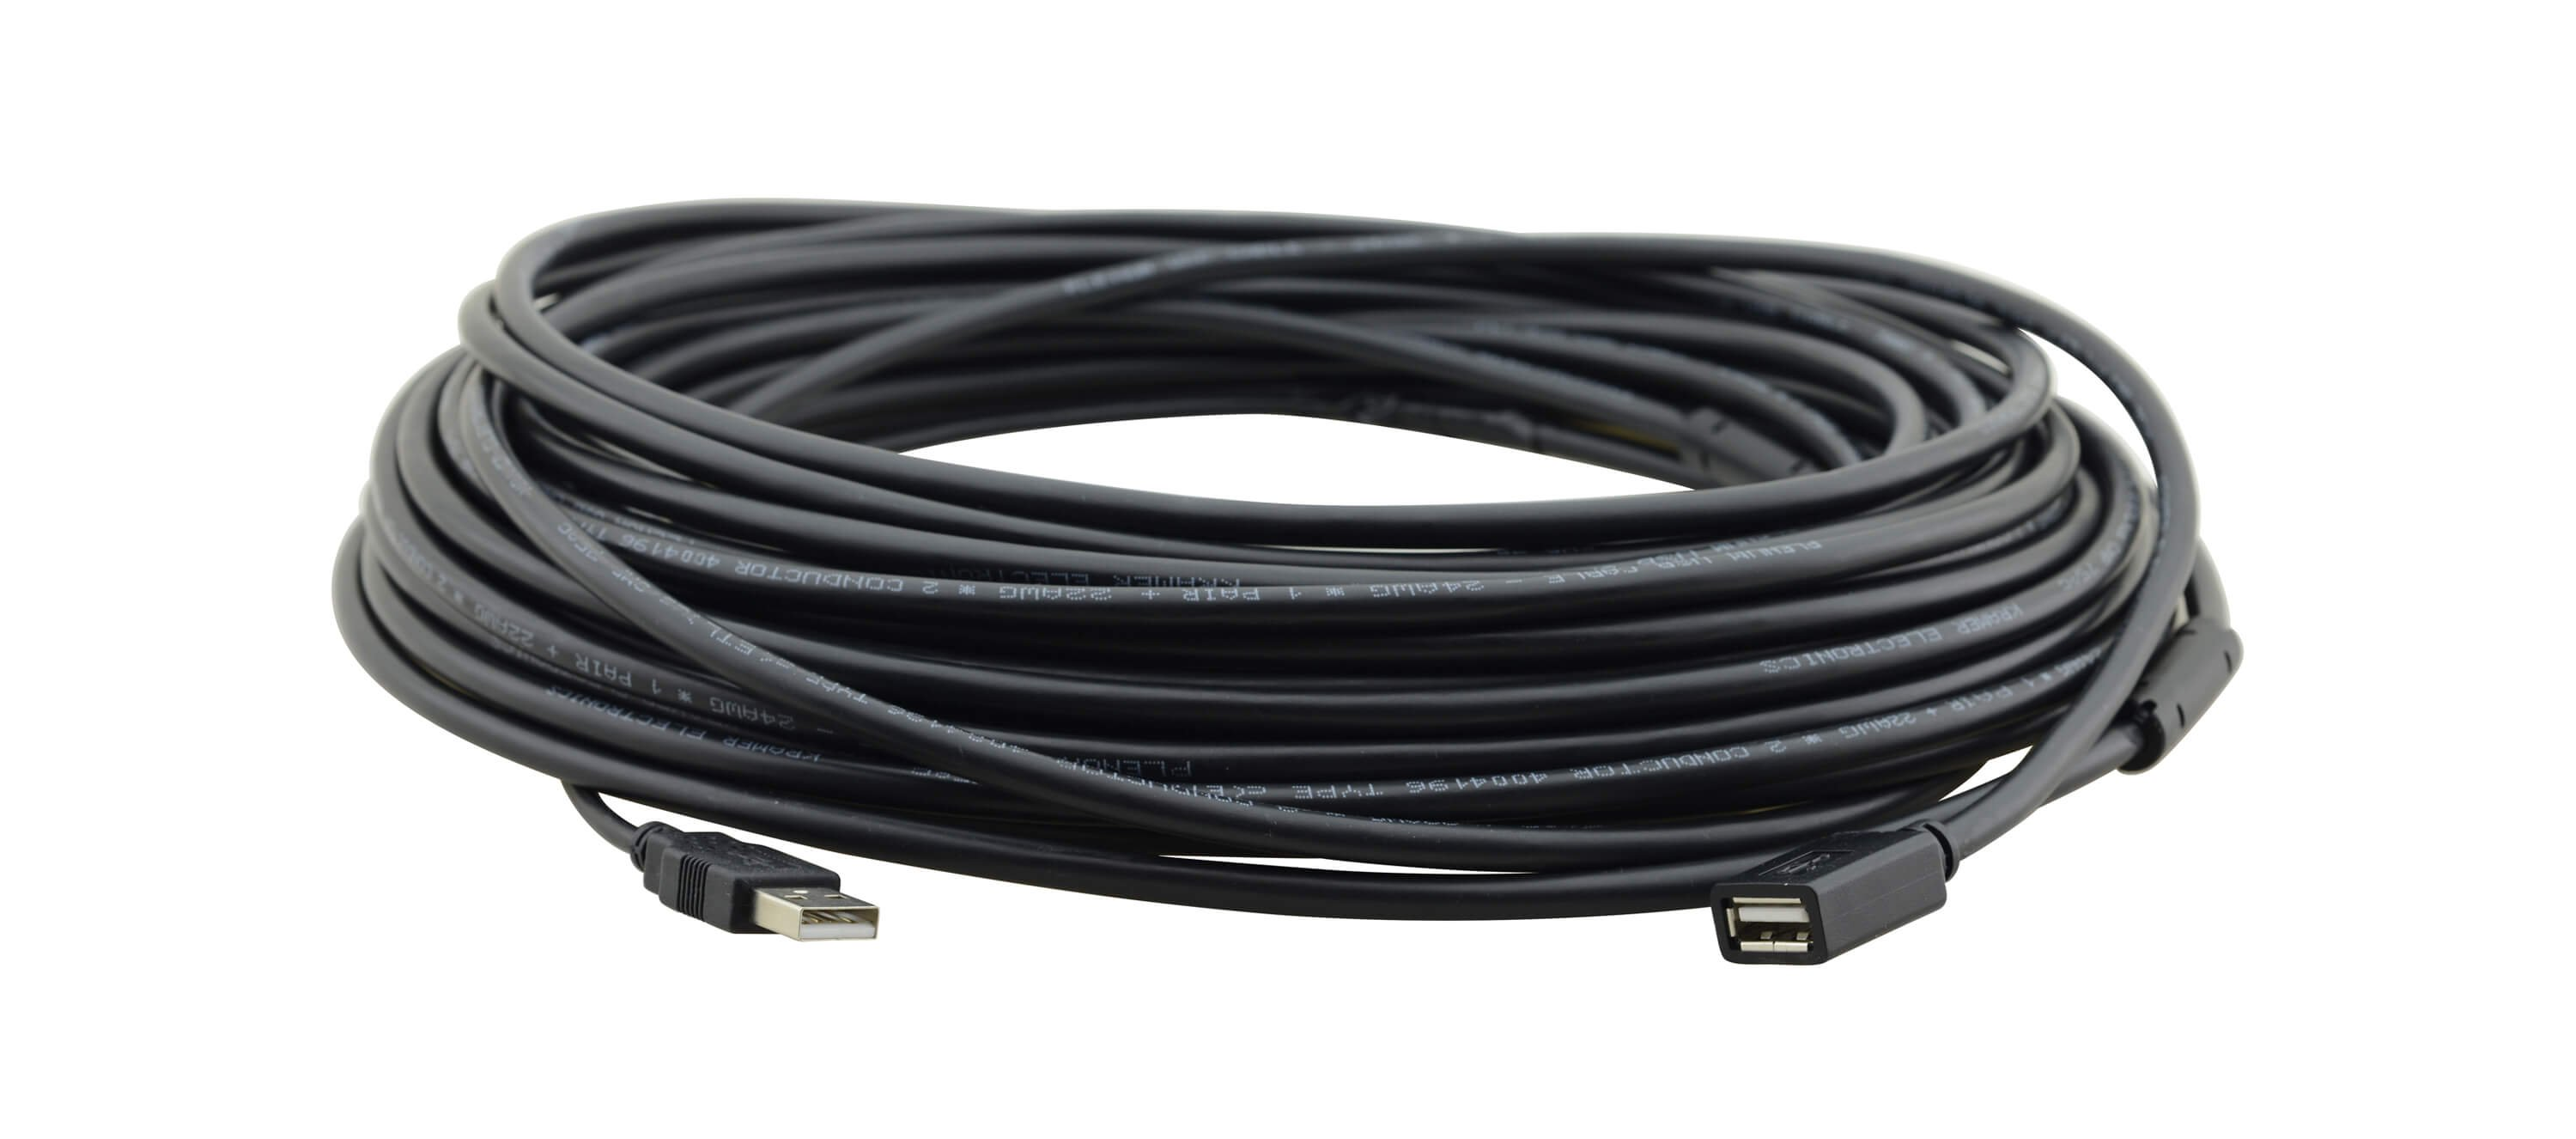 35 ft USB Active Extender Cable